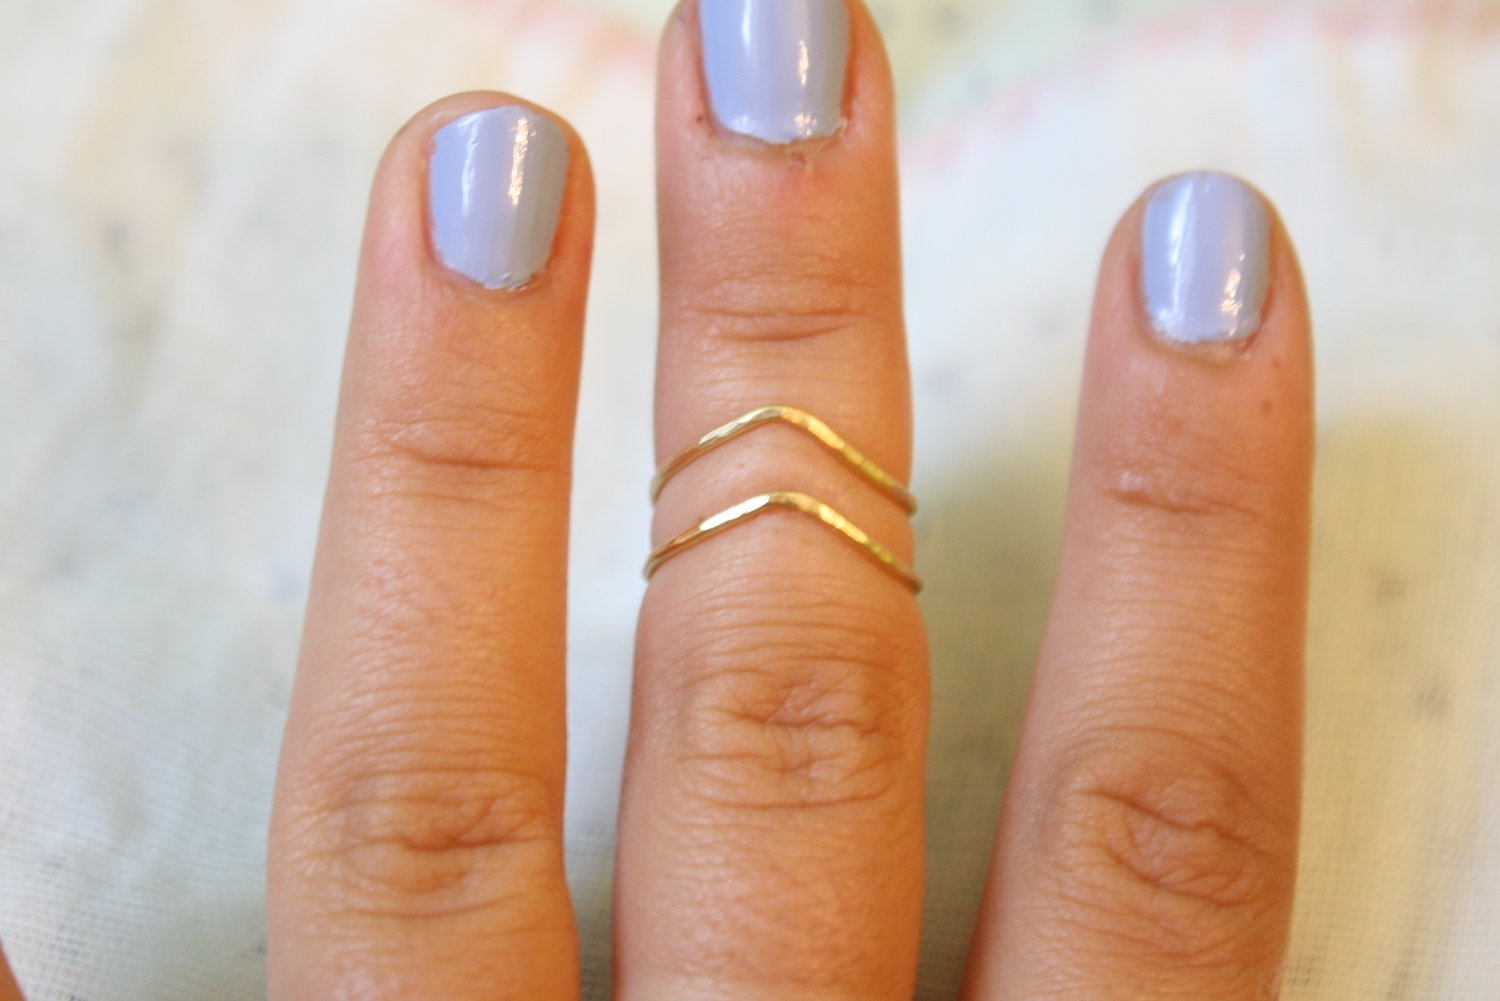 Chev Ring | Blingage | Pinterest | Knuckle Rings, Ring And Chevron With 2018 Chevron Knuckle Rings (View 5 of 15)